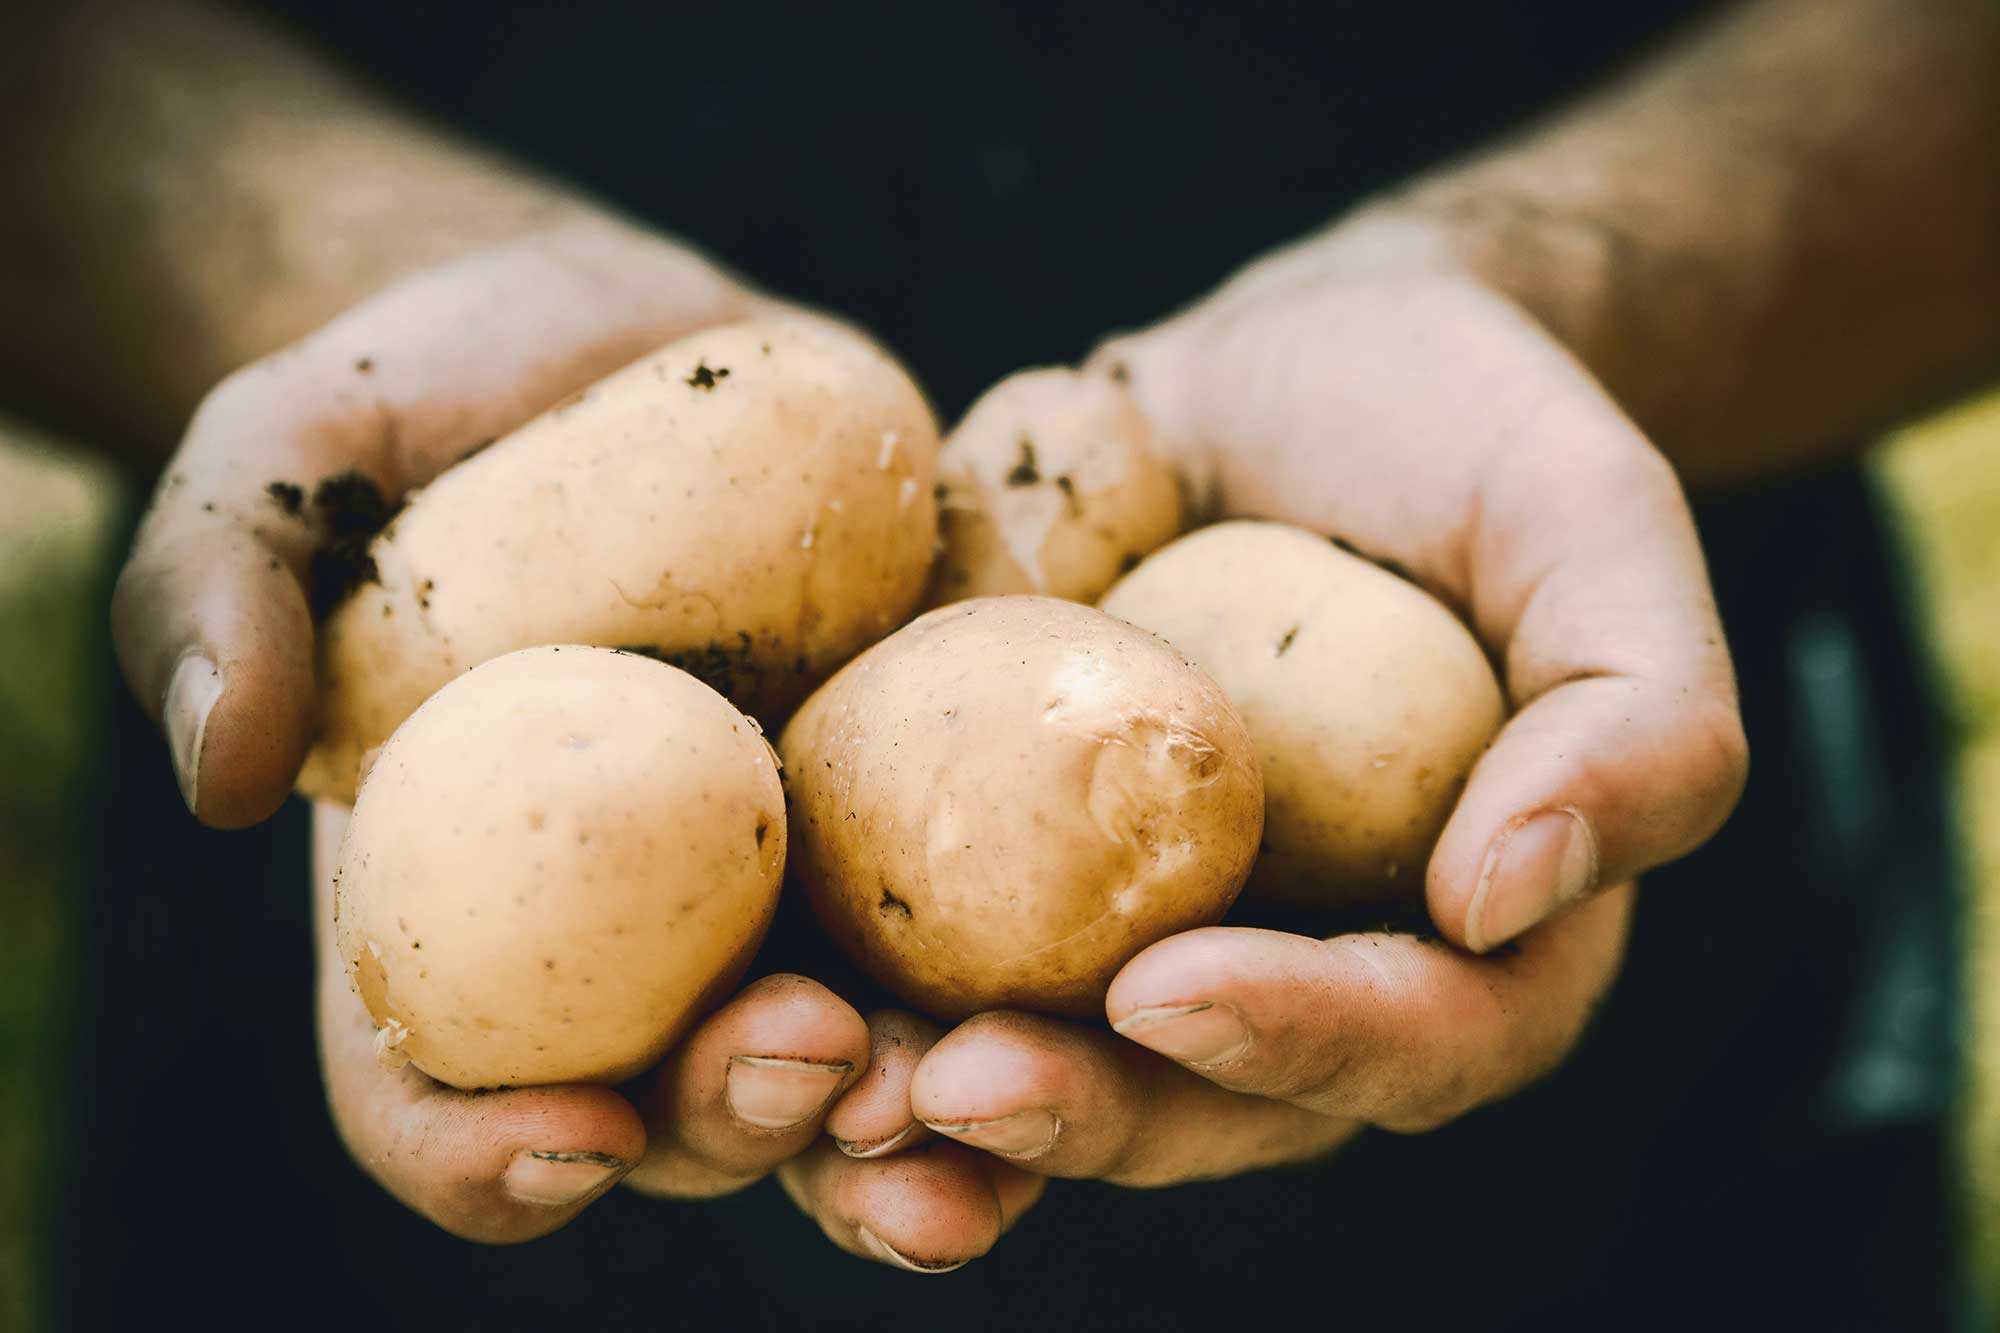 Person holding fresh potatoes in their hand